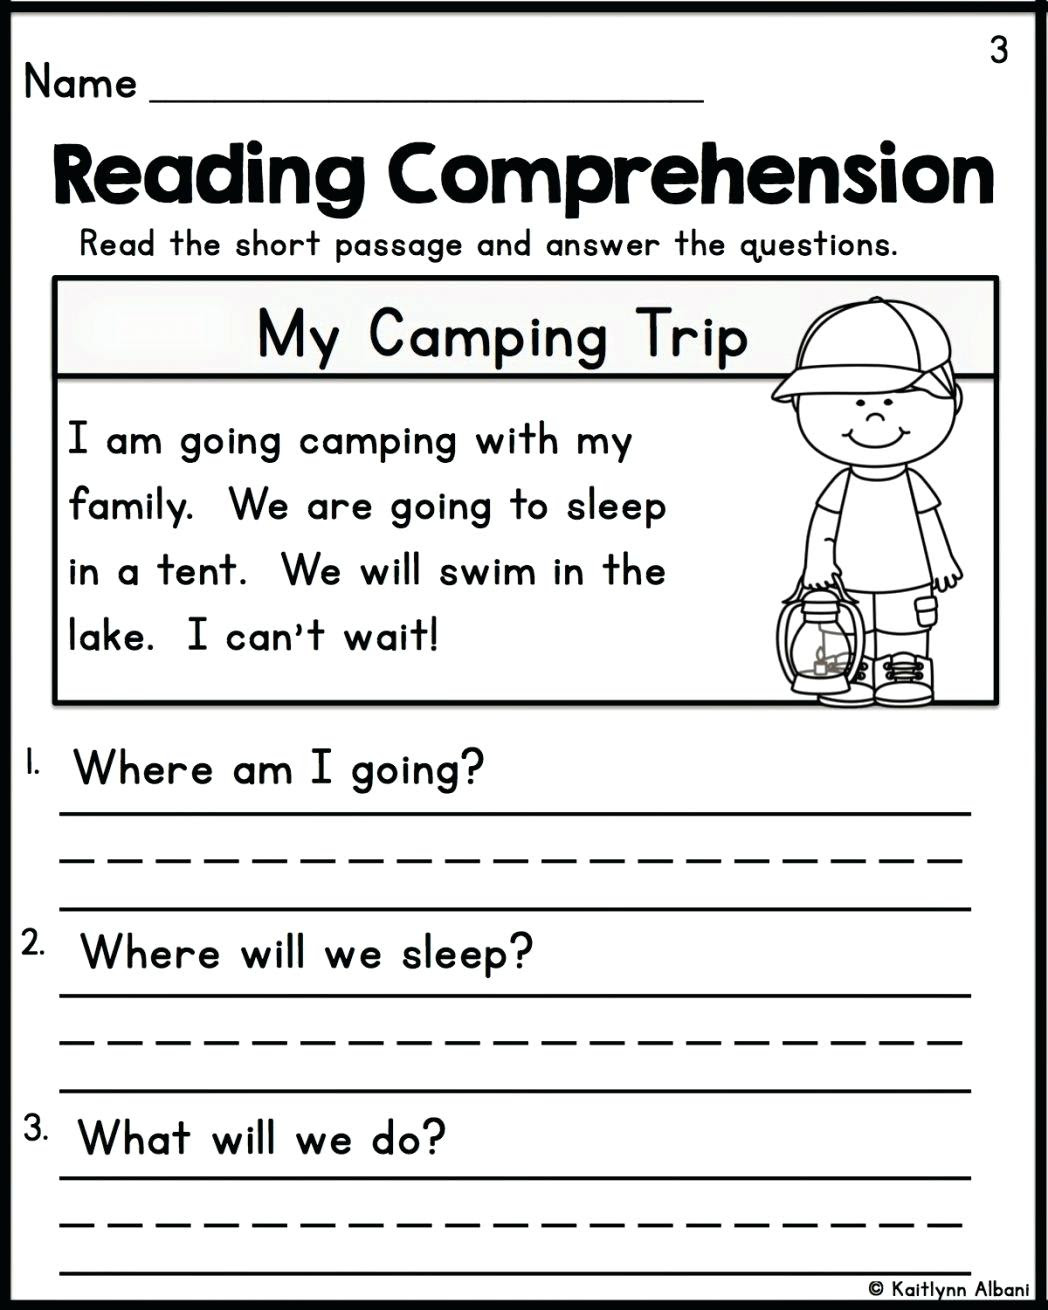 Worksheet Year 1 Reading Prehension Worksheets Tes Year